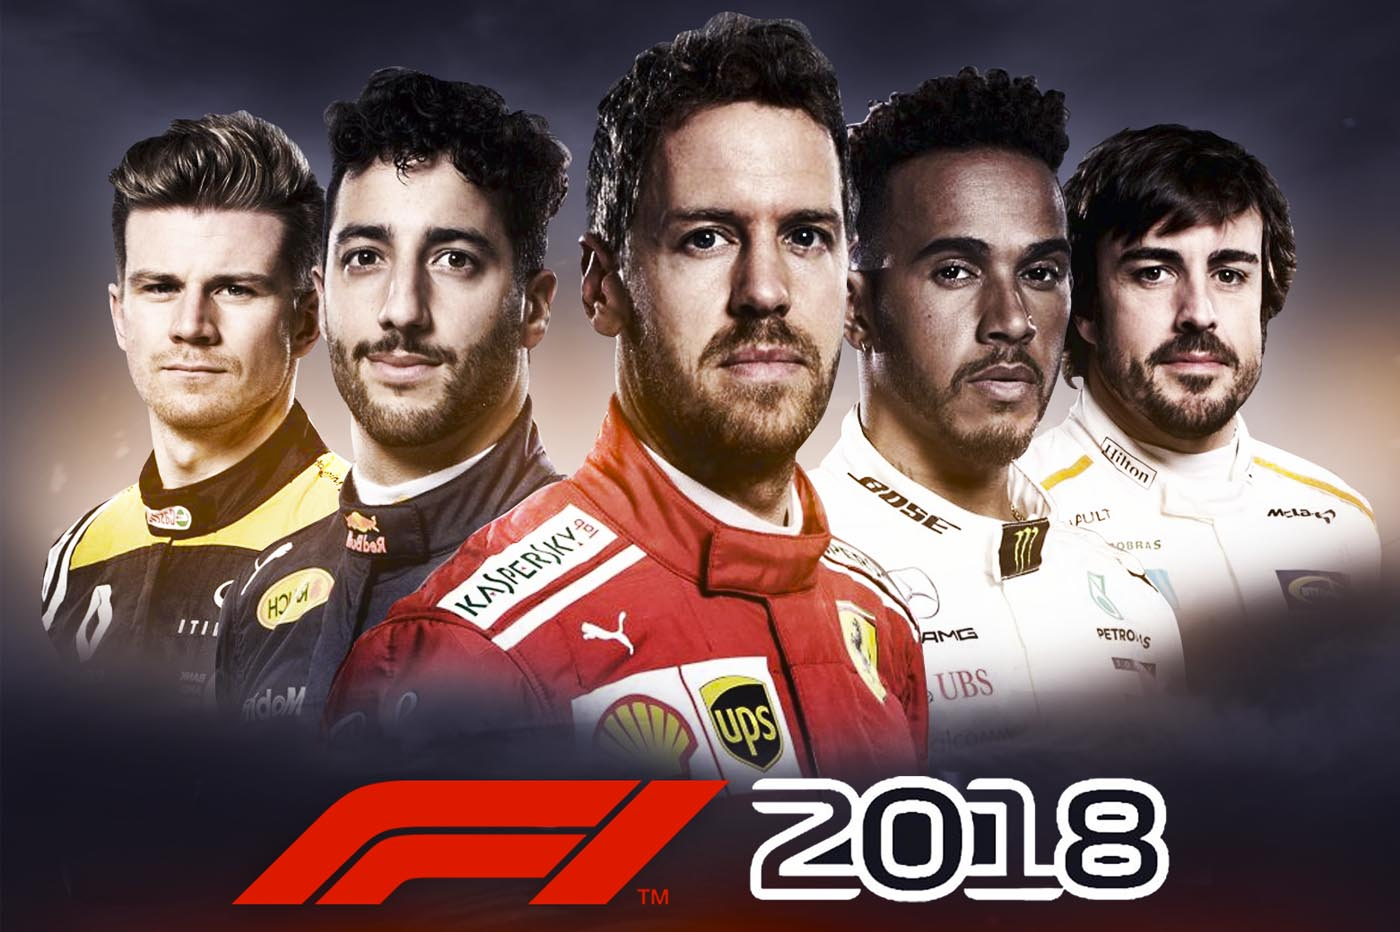 Analisis F1 2018 PS4